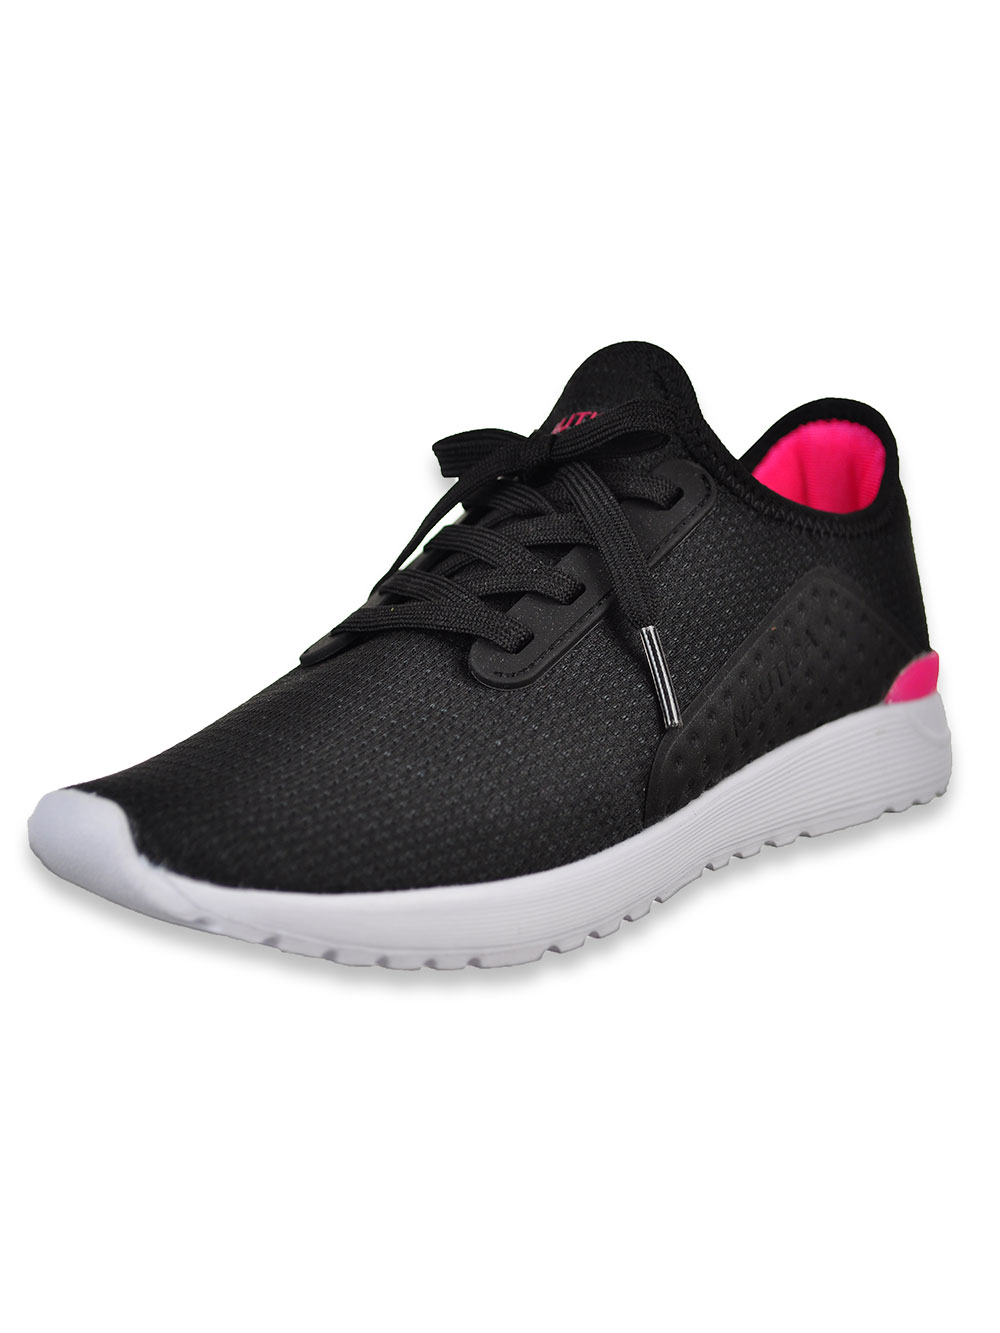 Girls' Kaiden Sneakers